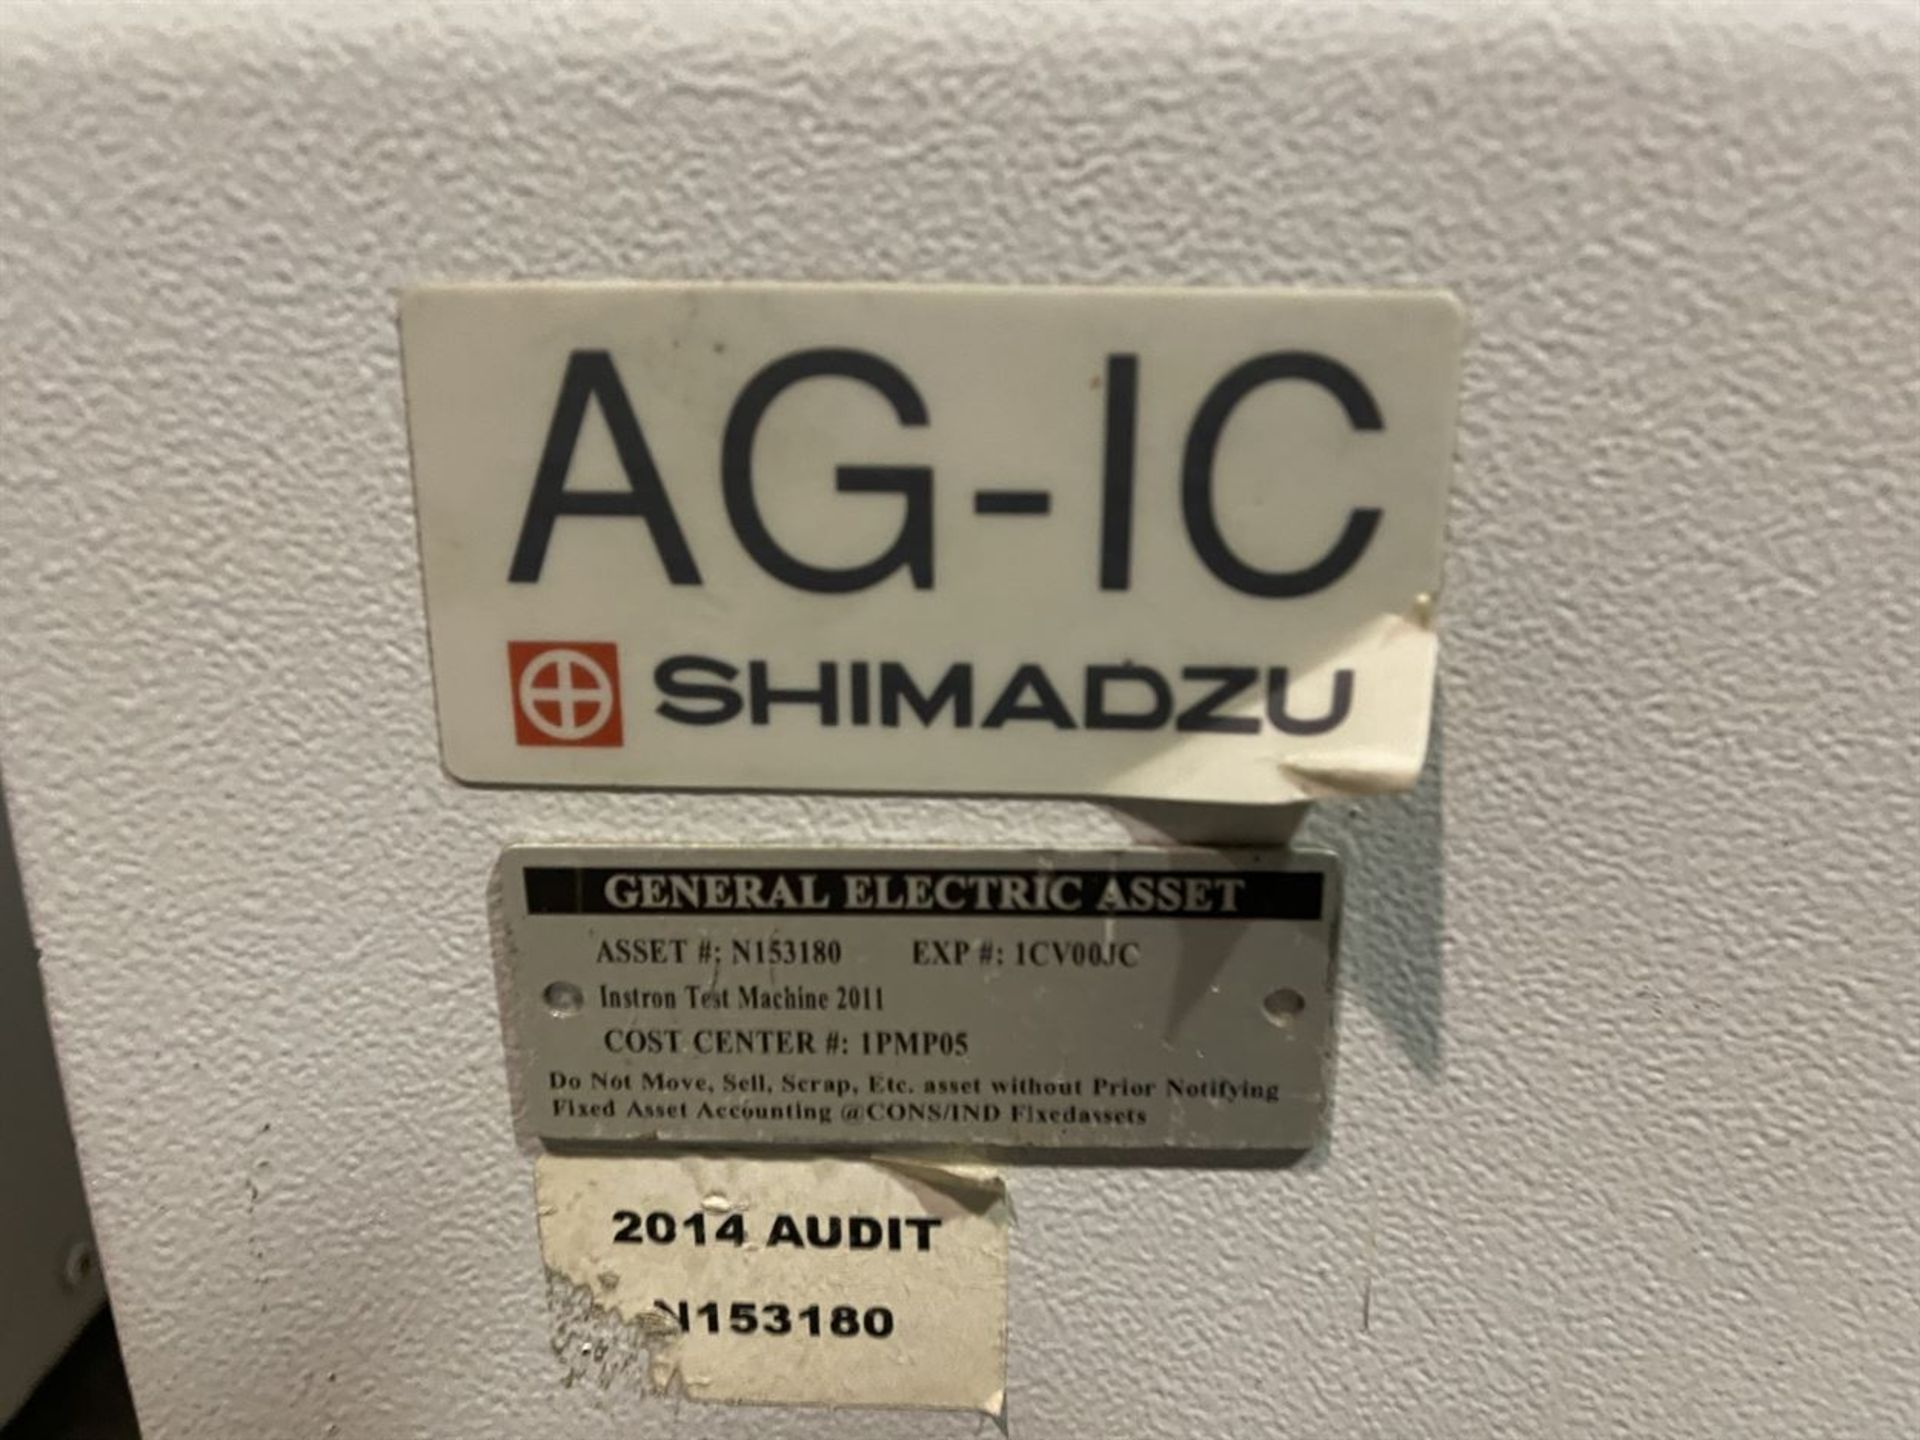 SHIMADZU AG-IC UNIVERSAL / TENSILE STRENGTH TESTER, s/n I30124936053, Autograph AG-IC Control/ - Image 5 of 5